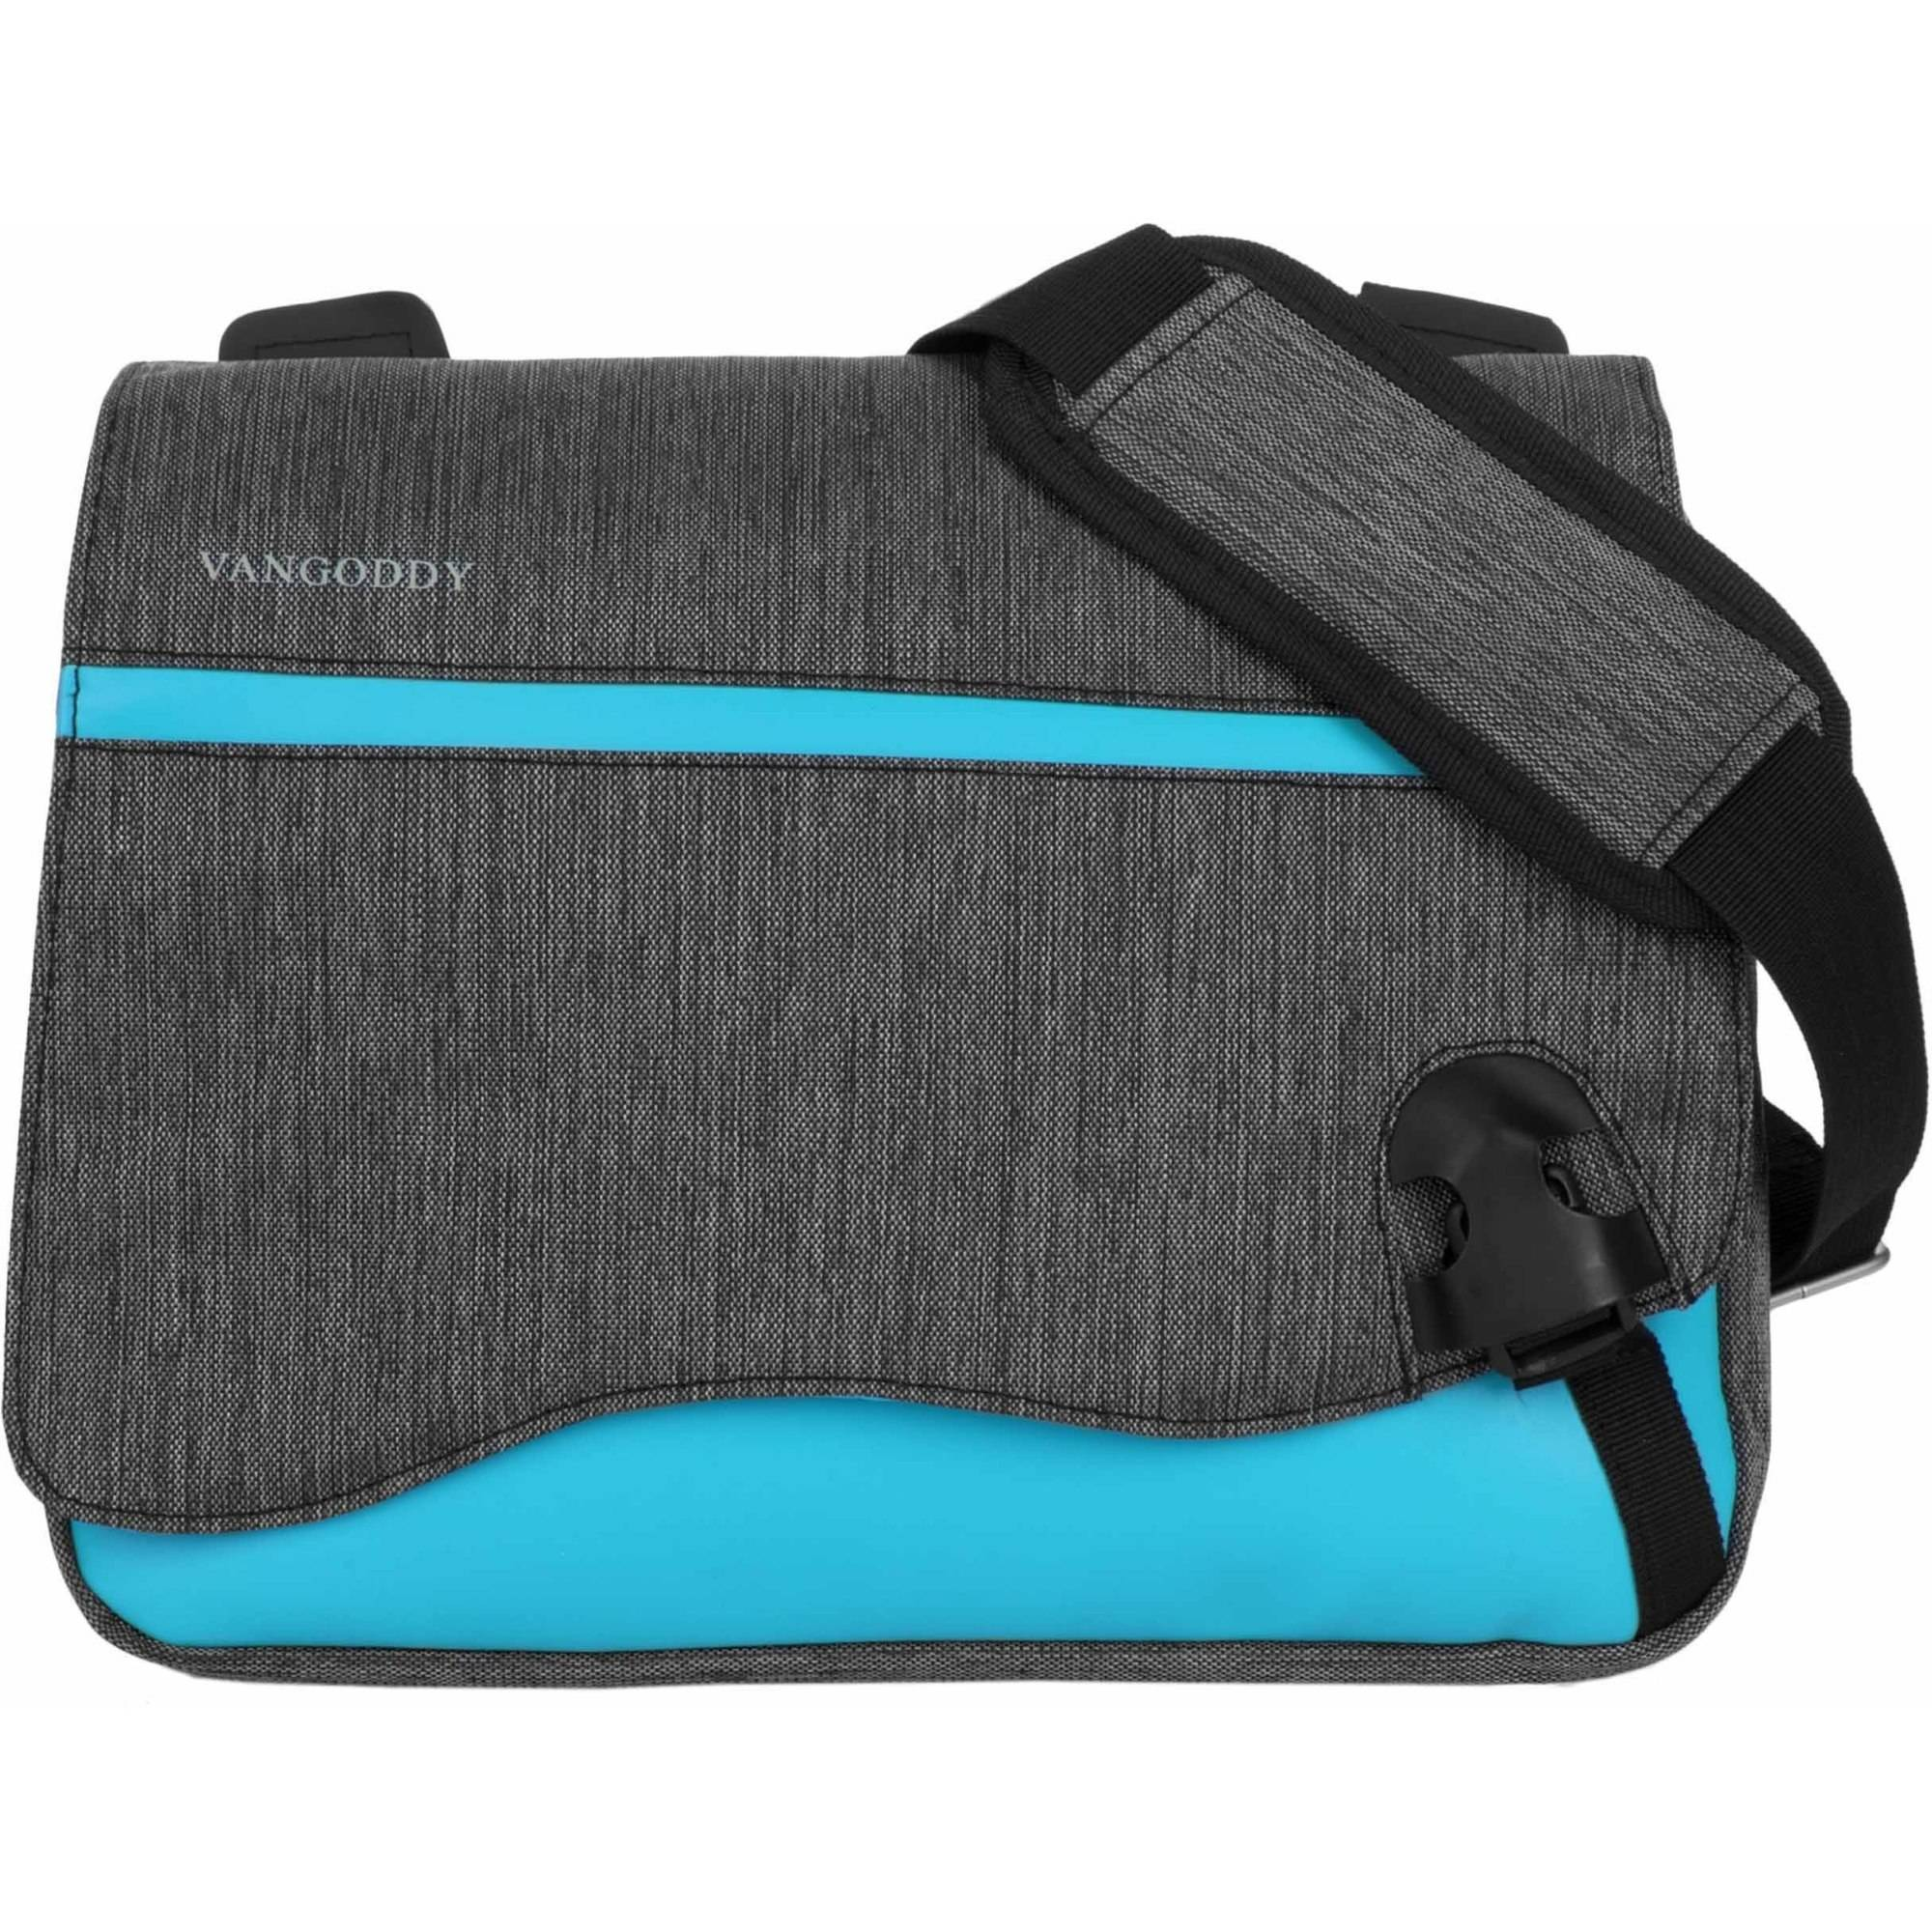 Vangoddy Mini Wave Series Padded Nylon Travel Carrying Shoulder Bag with Adjustable Strap for Tablets, eReaders, Netbooks and Laptops